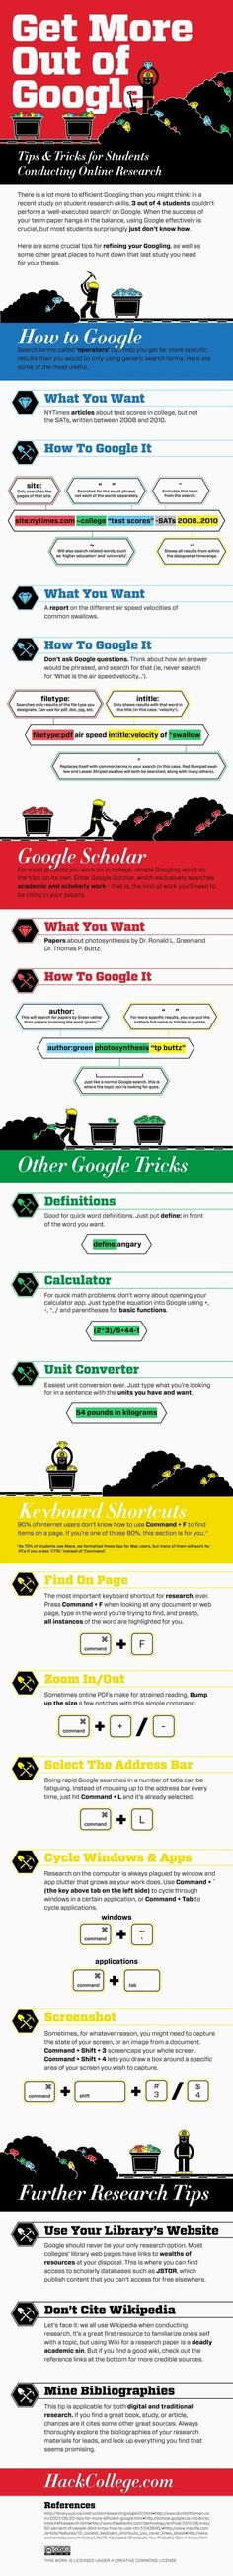 Tips and Tricks for students using Google - inf...